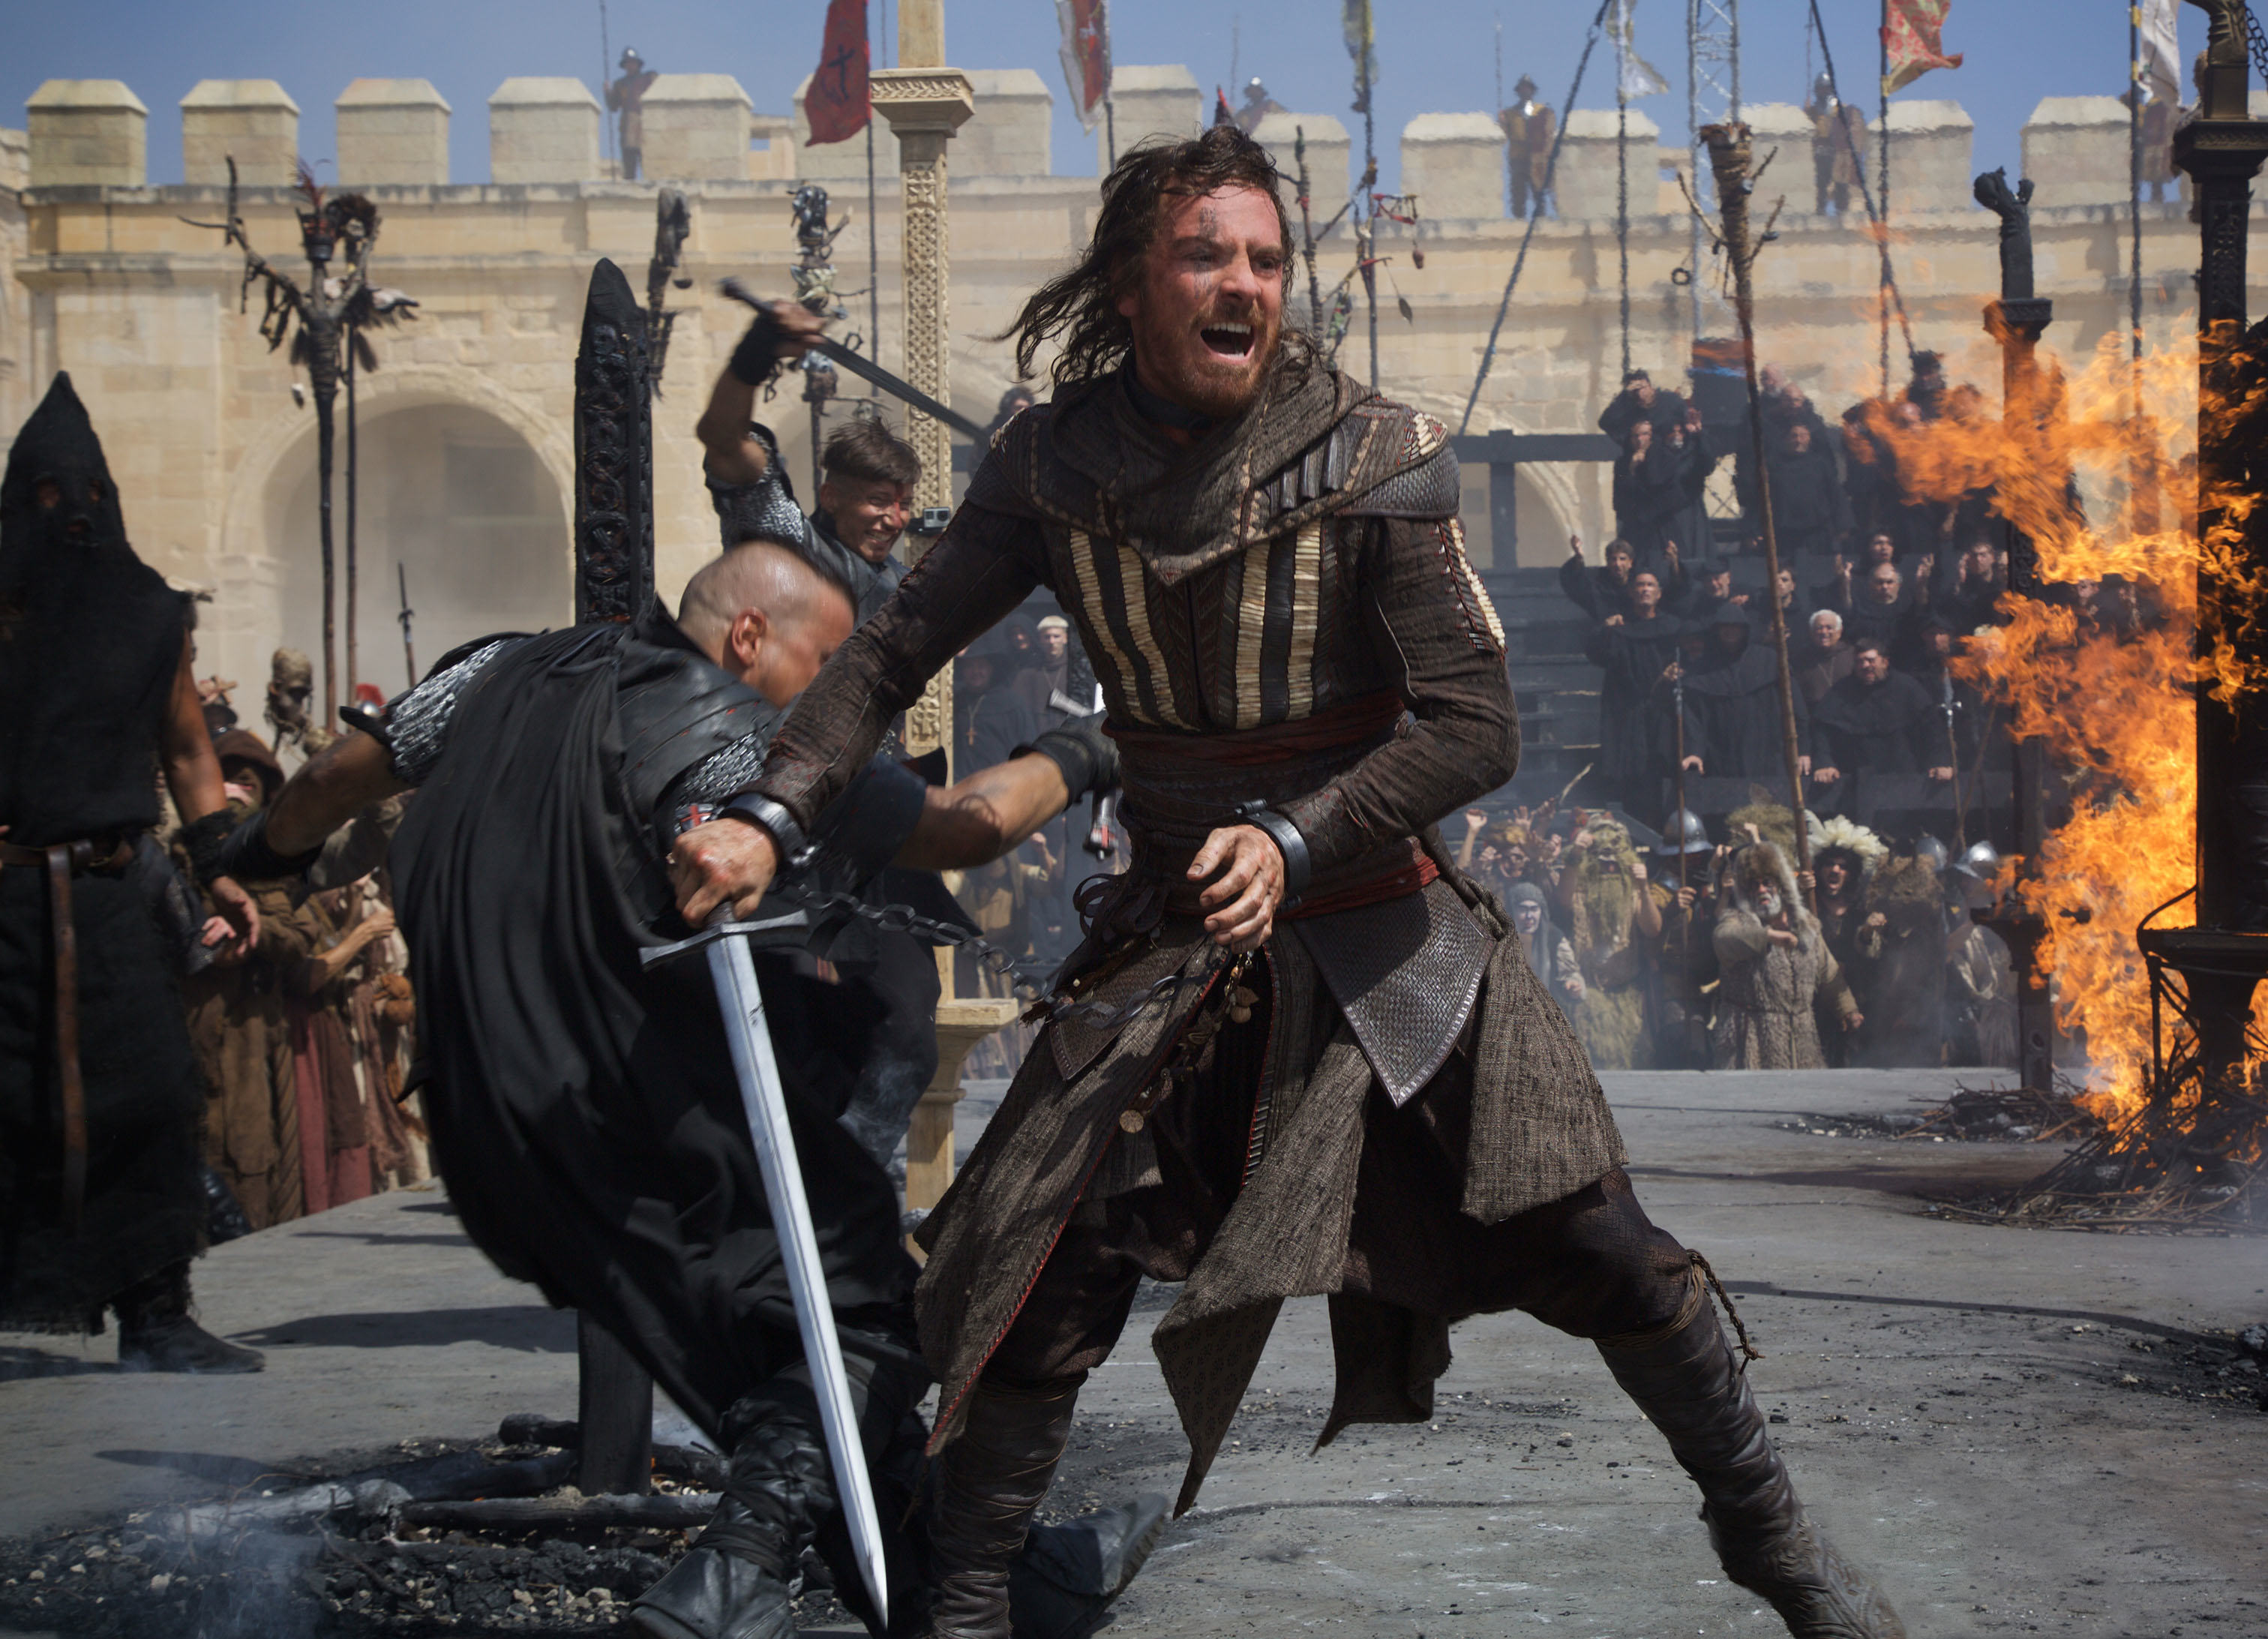 Assassins Creed Movie Might Already Have A Sequel Greenlit df 01952 r crop